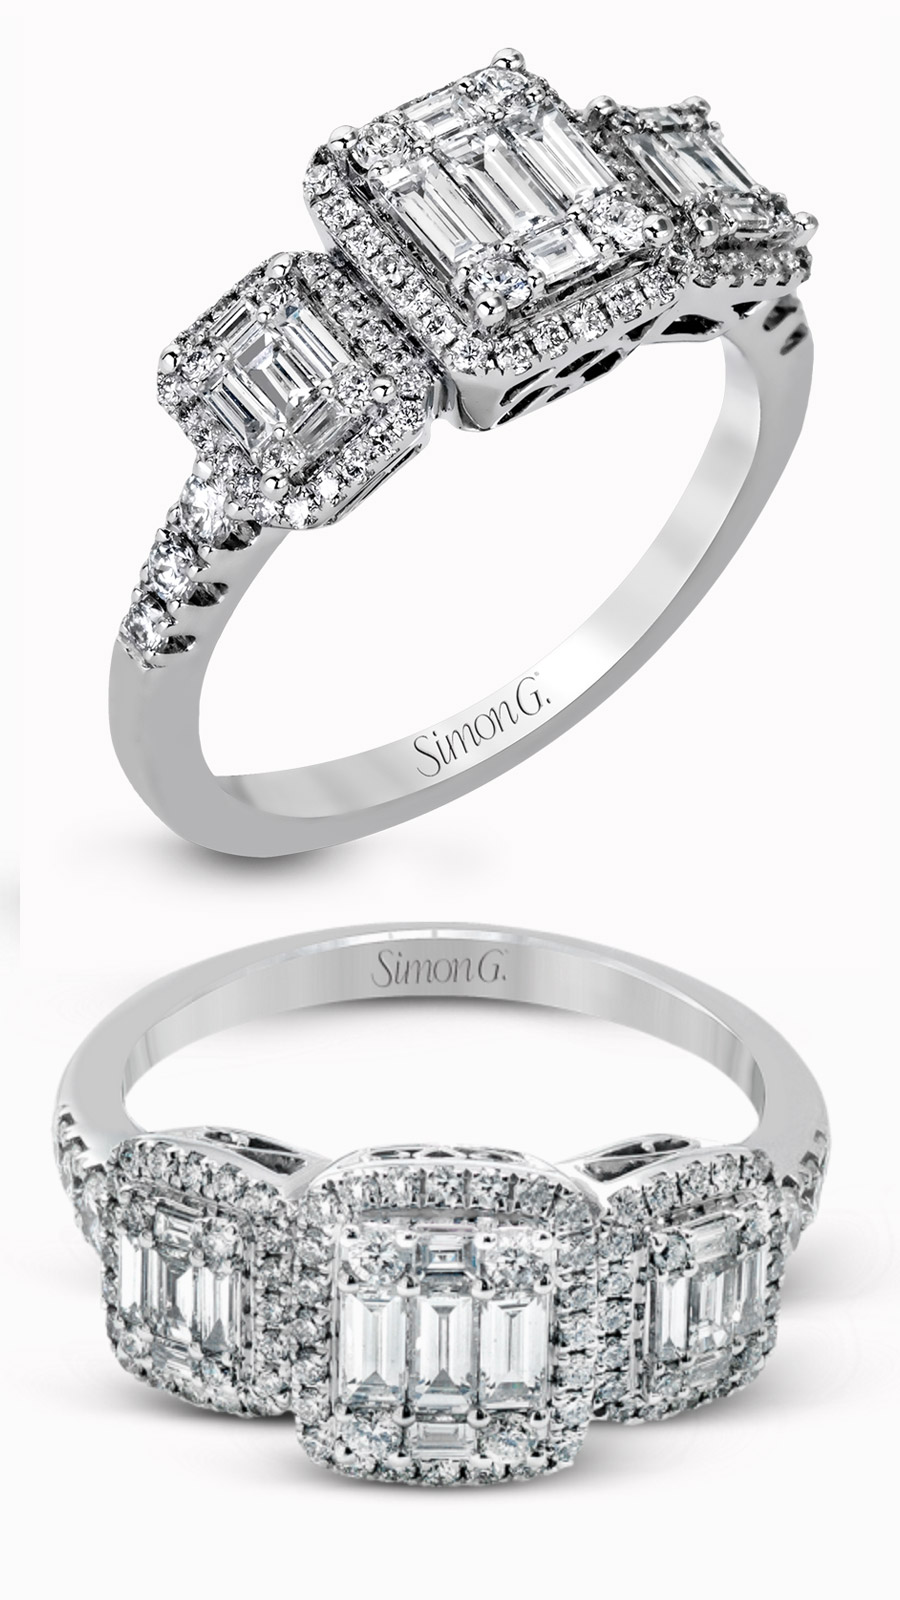 simon g gorgeous diamond engagement ring mr2363 right hand ring baguette diamonds